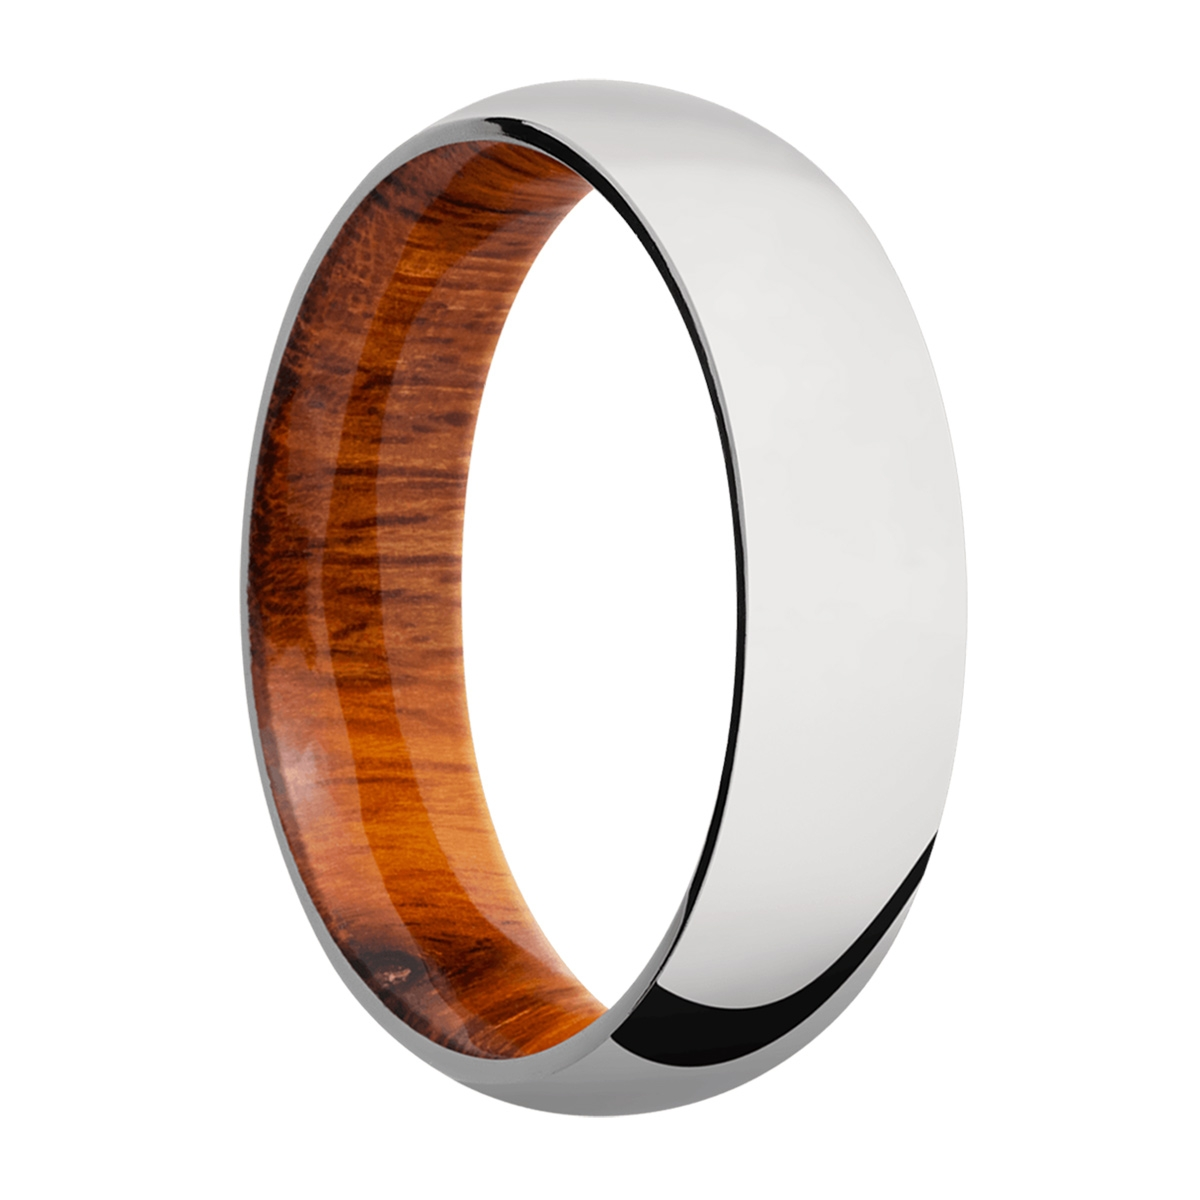 Lashbrook HWSLEEVECC6D Cobalt Chrome and Hardwood Wedding Ring or Band Alternative View 1